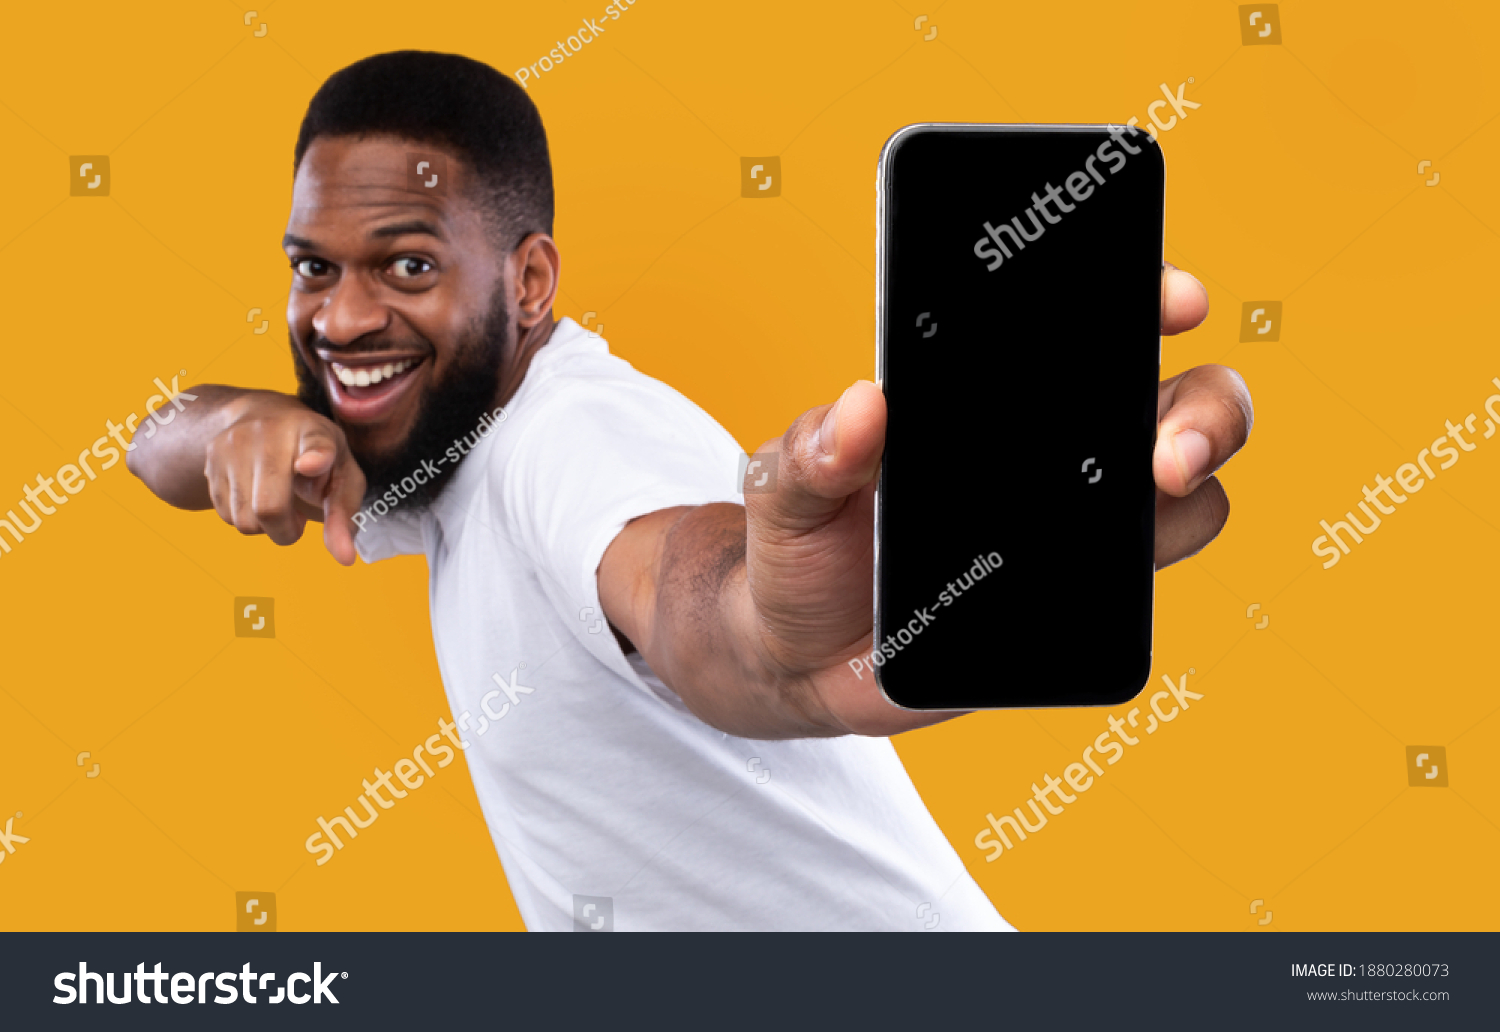 Mobile App Advertisement. Excited Black Man Showing Smartphone Empty Screen Recommending App Posing Over Yellow Studio Background, Smiling To Camera. Check This Out, Cellphone Display Mockup #1880280073